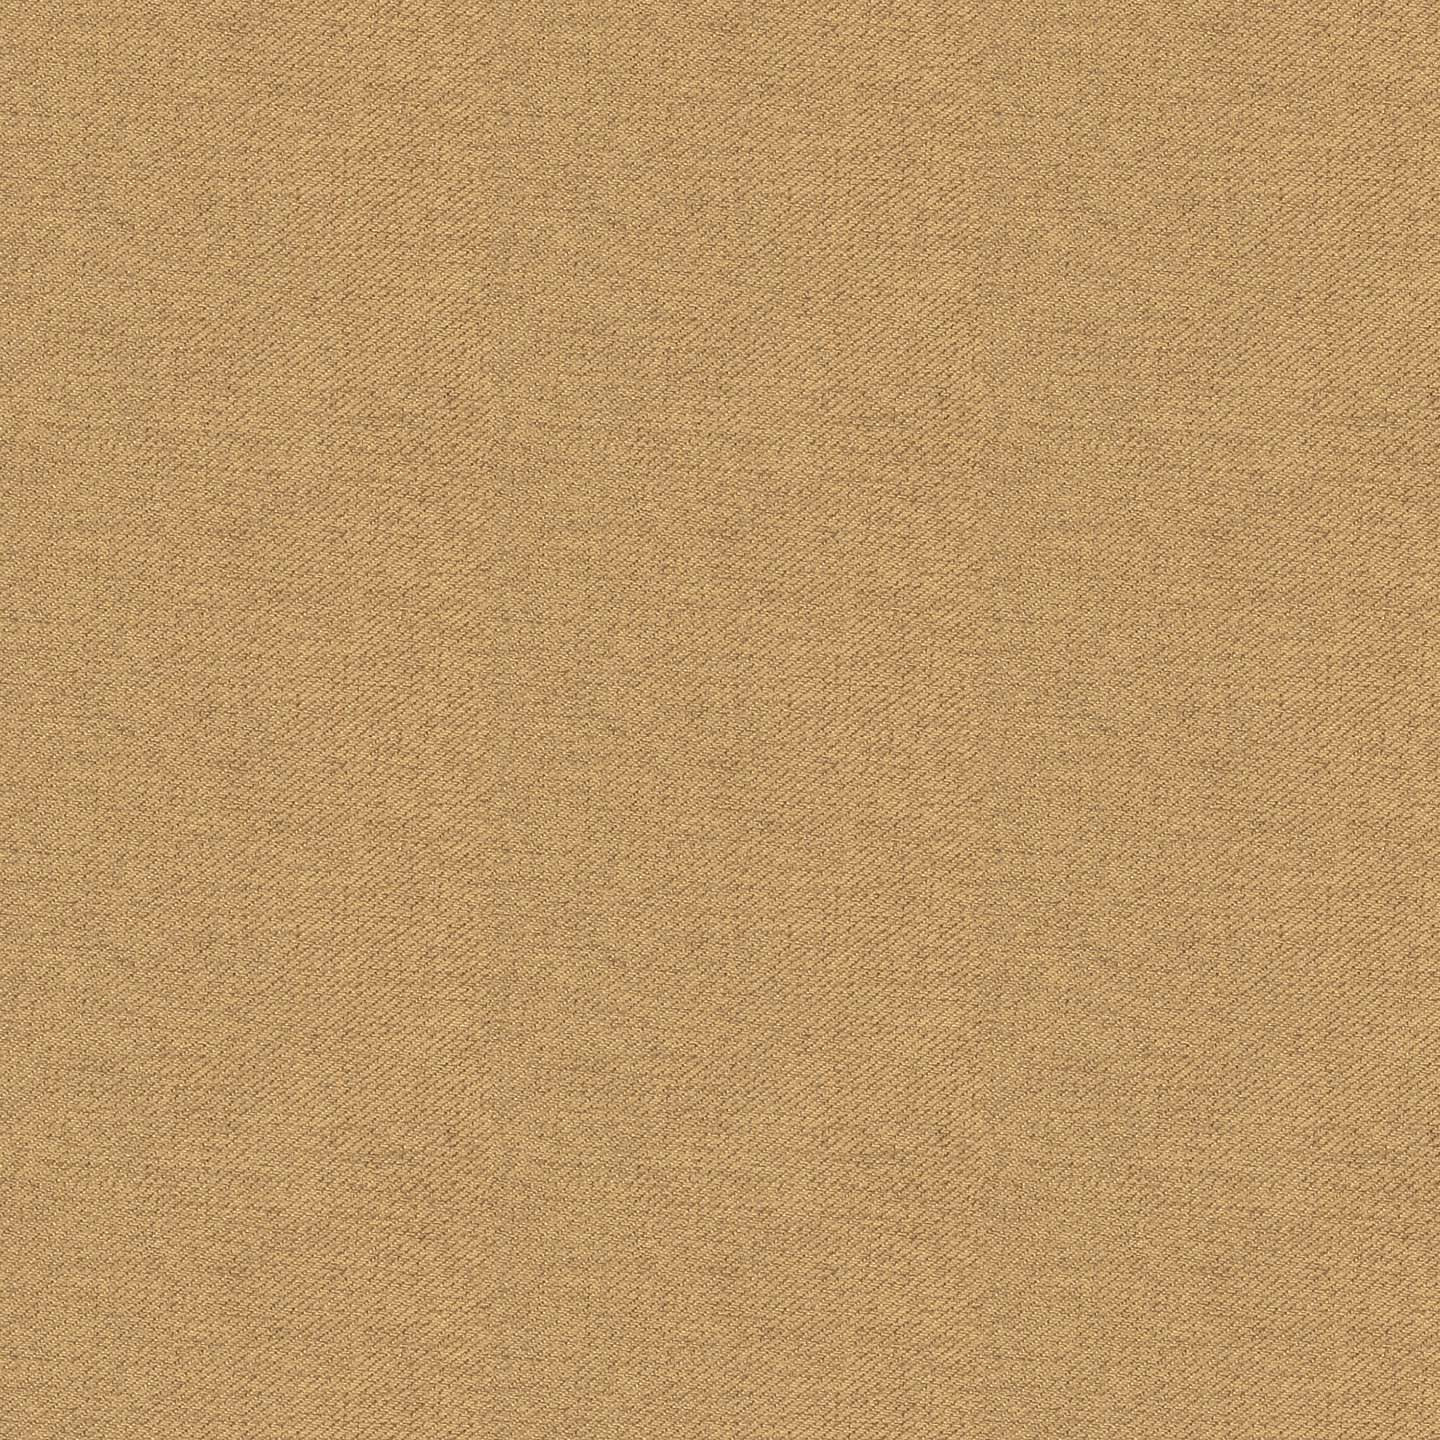 Reede Wheat Swatch Product Thumbnail